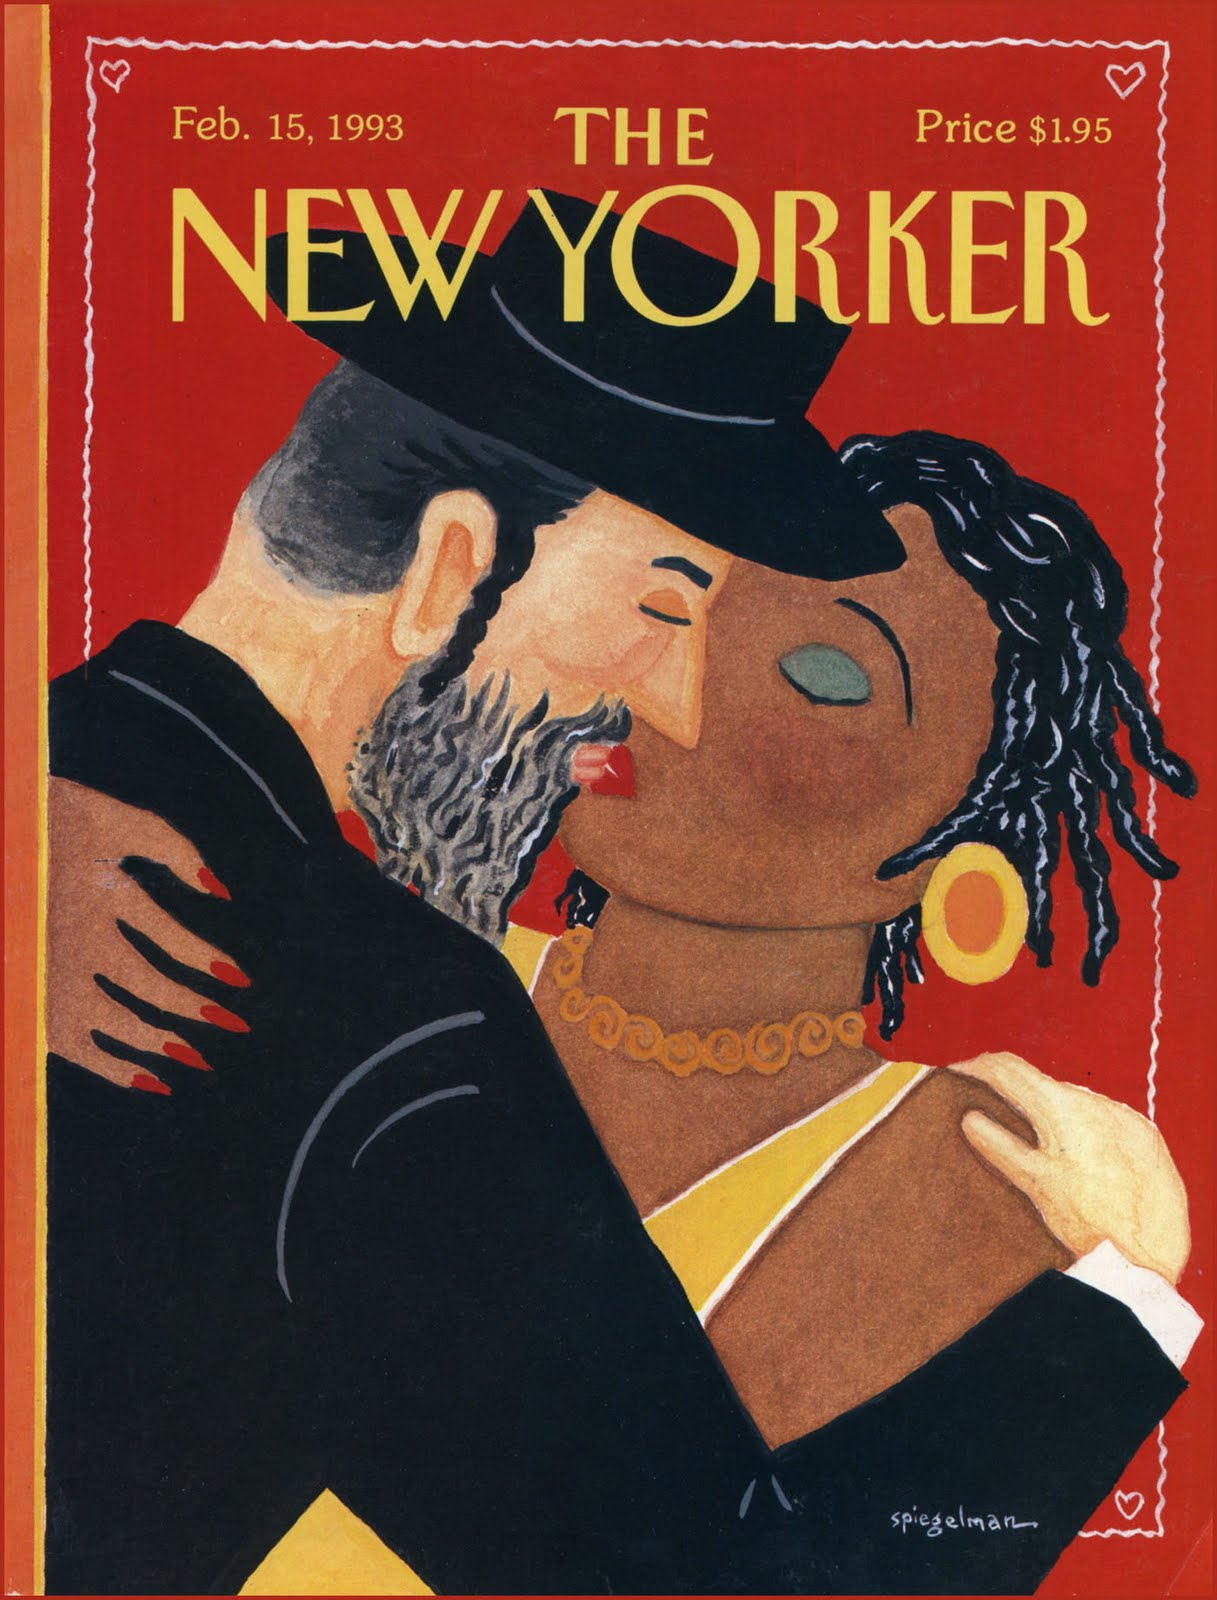 The Feb. 15, 1993 issue of the <i>New Yorker</i>, celebrating Valentine's Day, commenting on the 1991 Crown Heights riots sparked by tension between Jewish and African-American communities in Brooklyn.